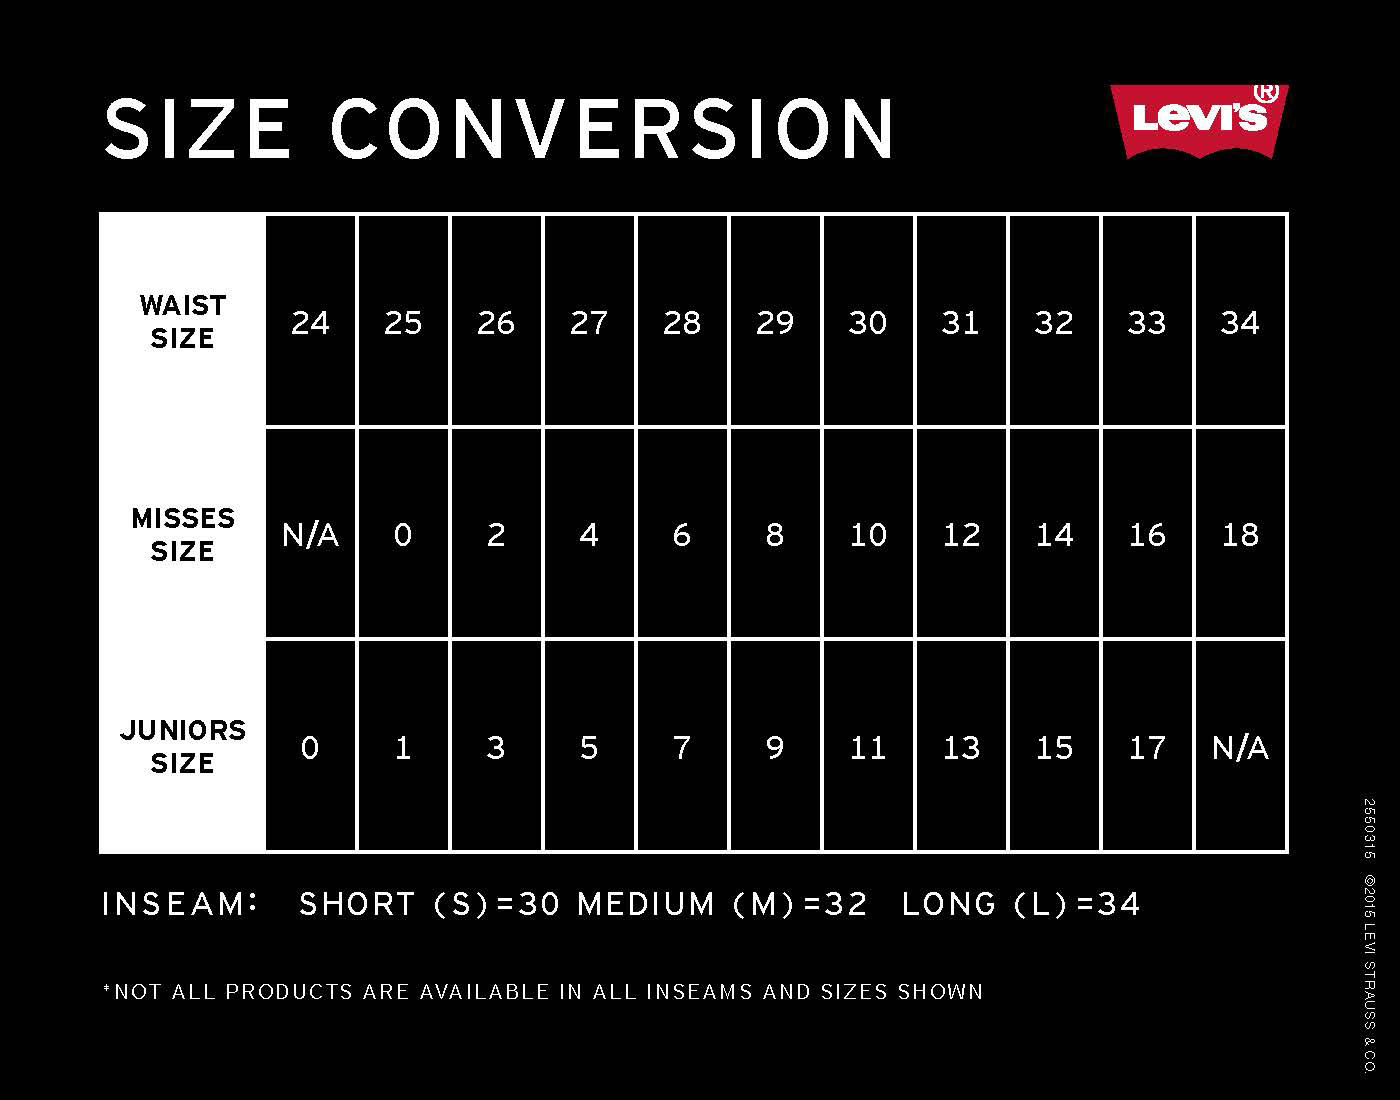 Levis jeans size chart conversion size chart for levis womens hd image of levis jeans size chart conversion size charts international size nvjuhfo Images